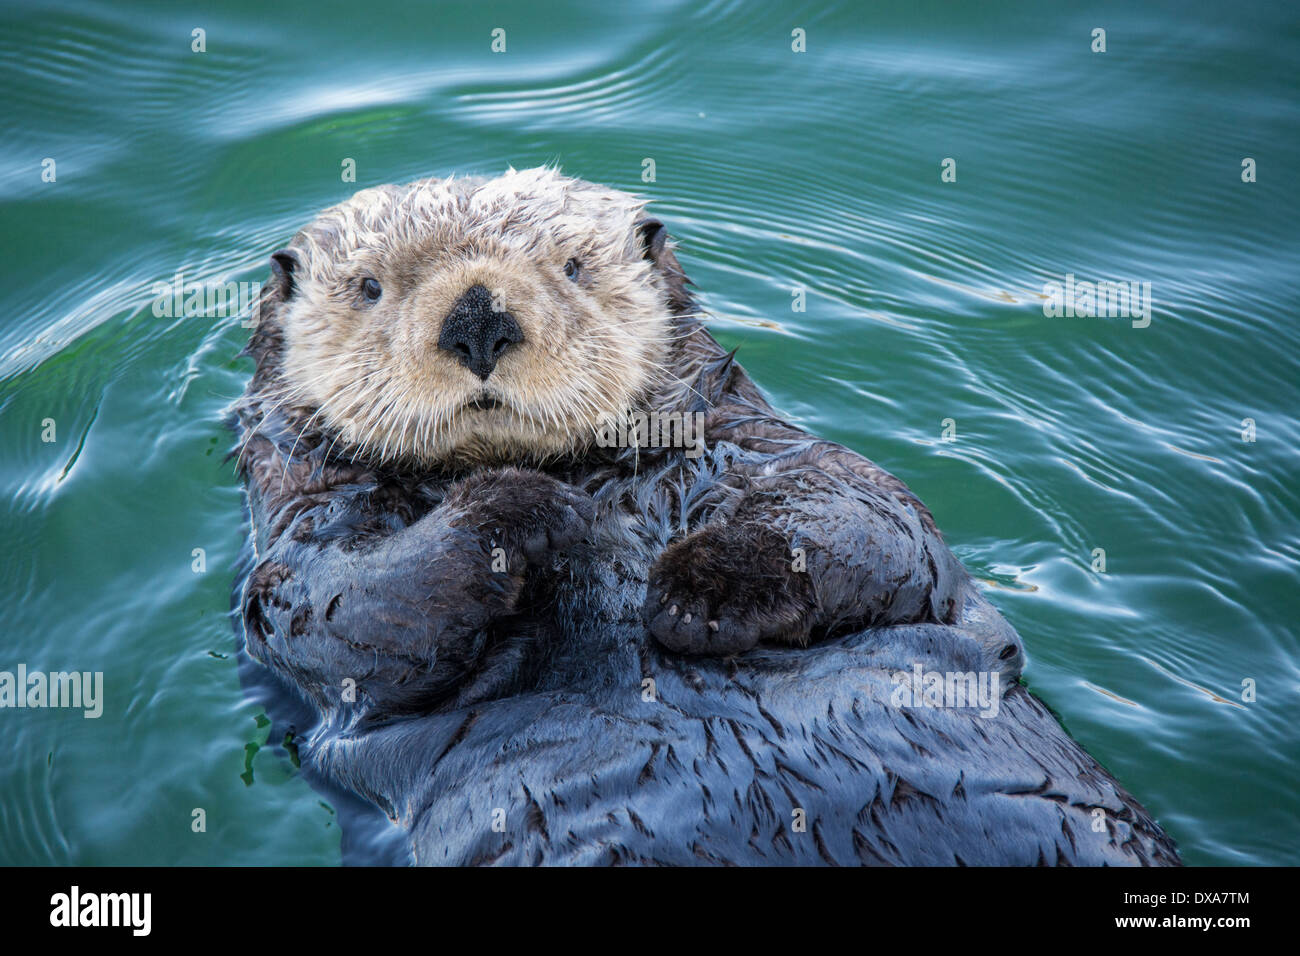 Cute Sea Otter, Enhydra lutris, lying back in the water, Seldovia Harbor, Alaska, USA Stock Photo